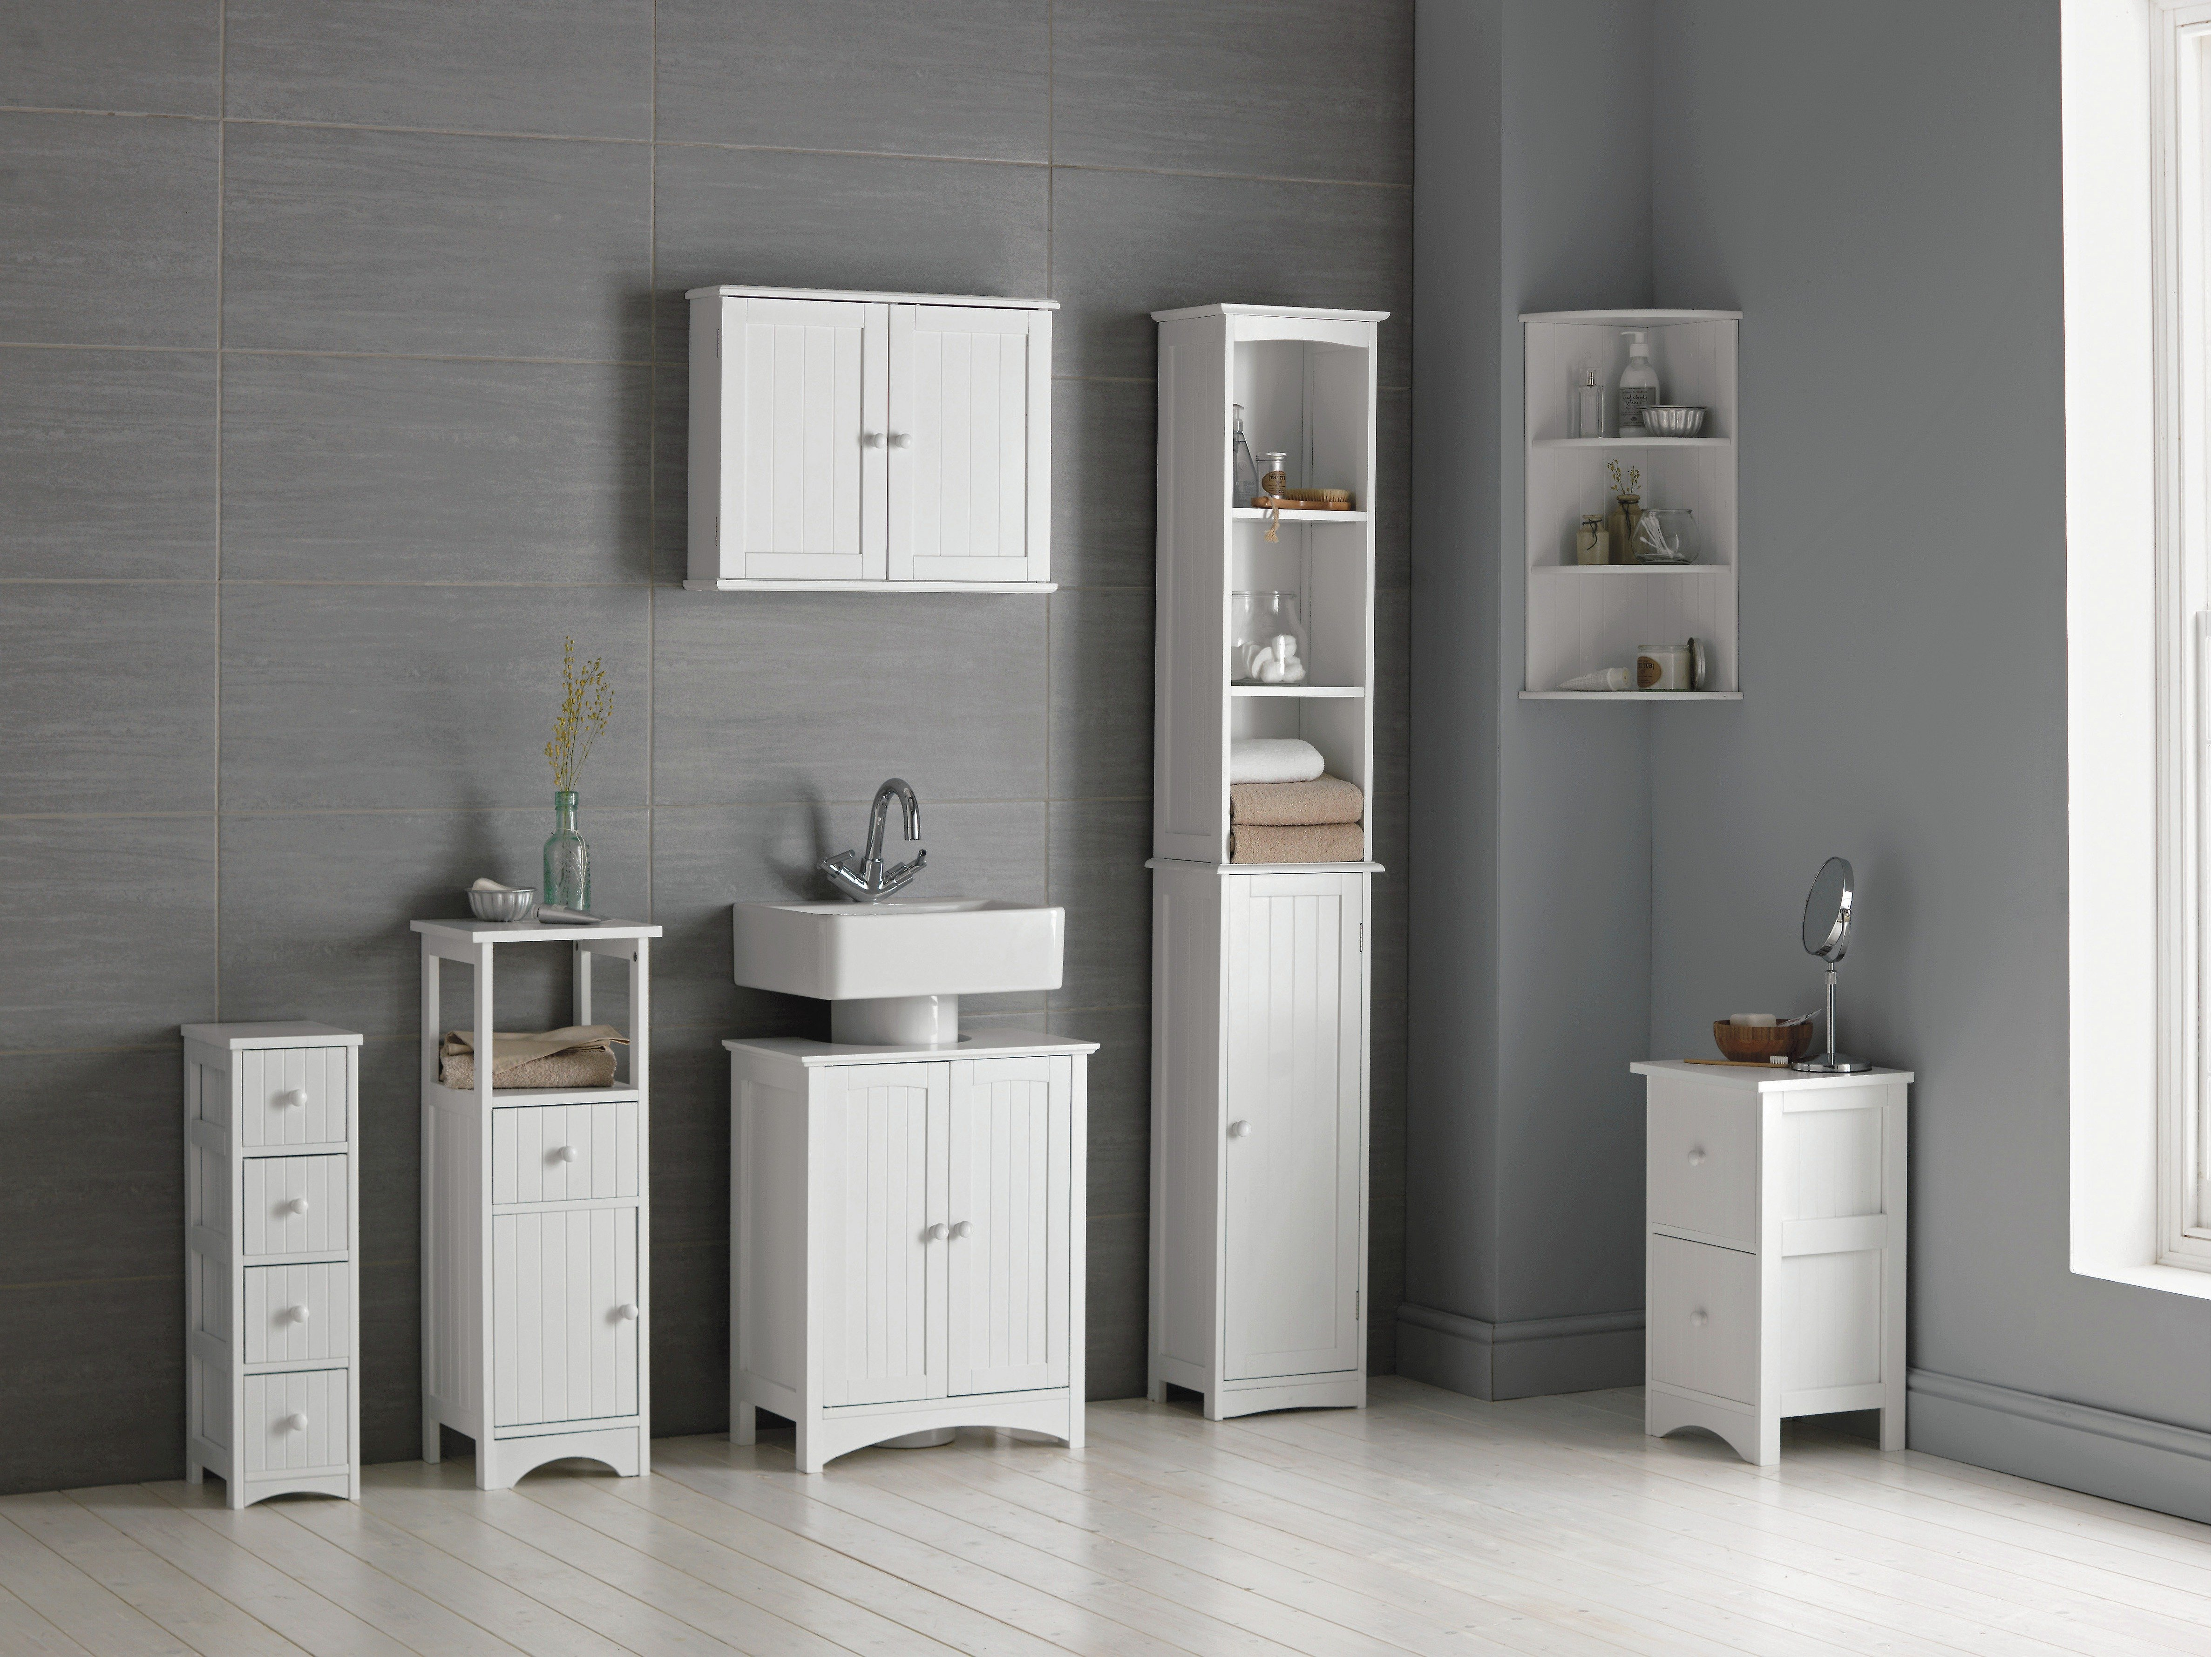 Fantastic Argos Launched  For The Bathroom, New Bamboo Accessories From The Collection Include The Bathroom Bench &1634499 And Ladder Shelf &1636999 And With Spring All About Decluttering, The Collections New Wire Storage Units